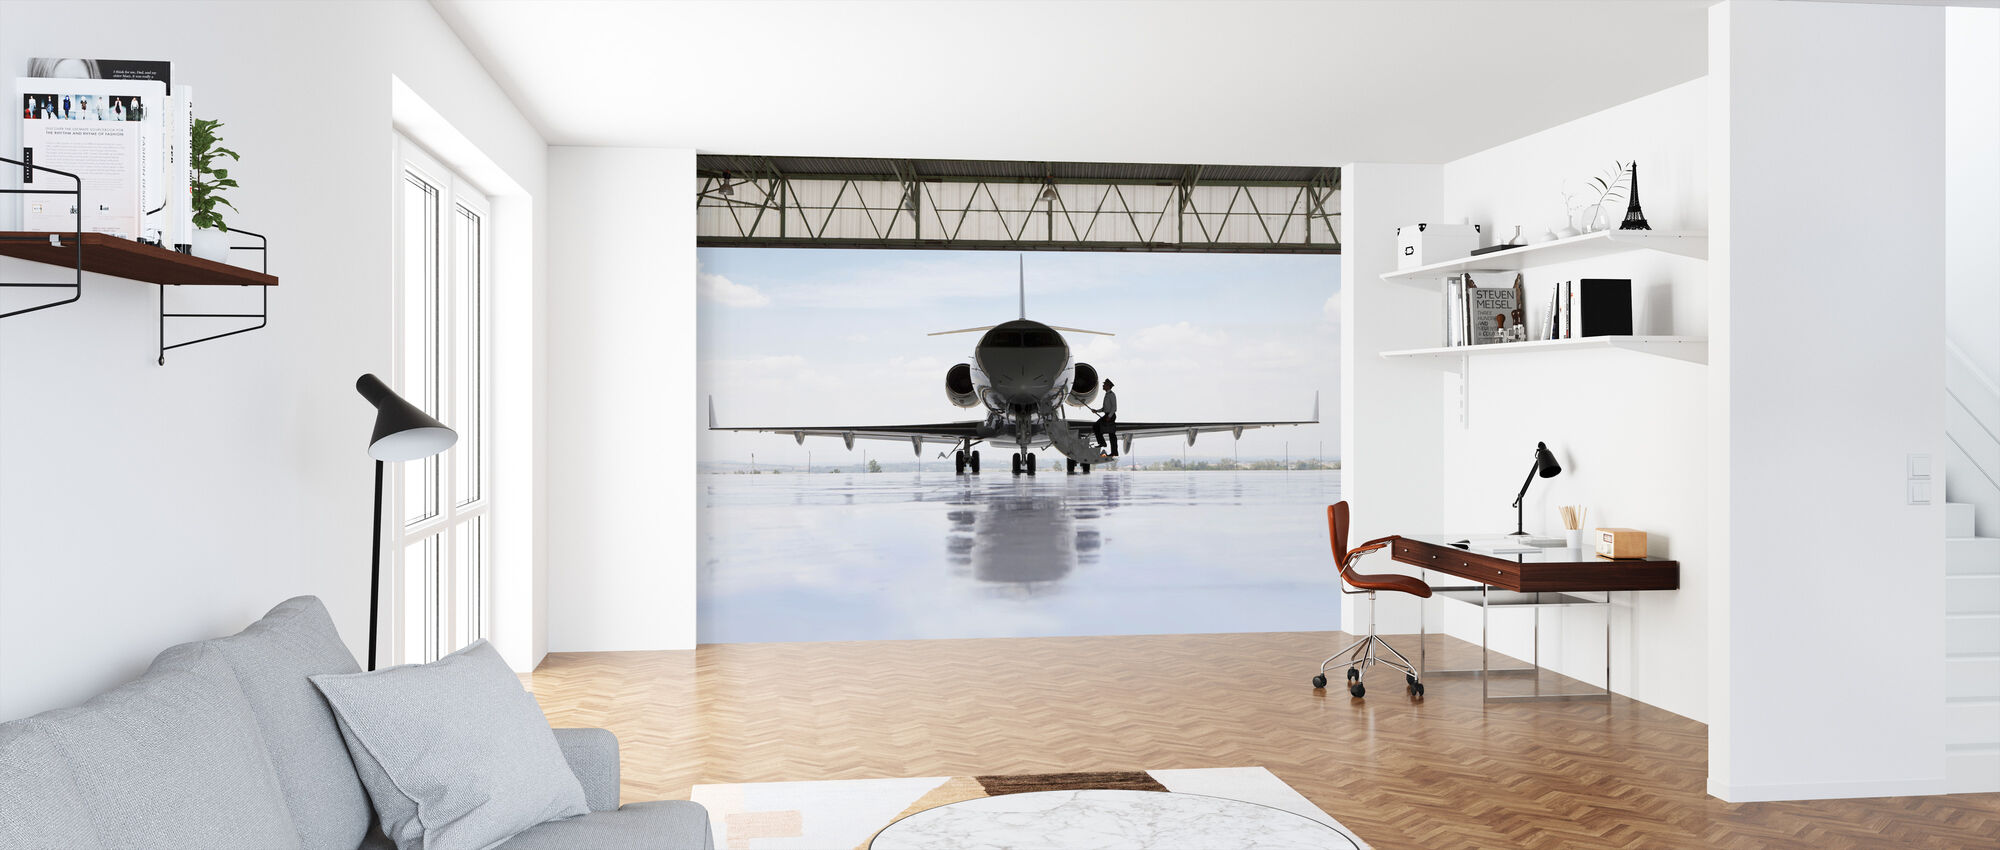 Airplane in Terminal - Wallpaper - Office